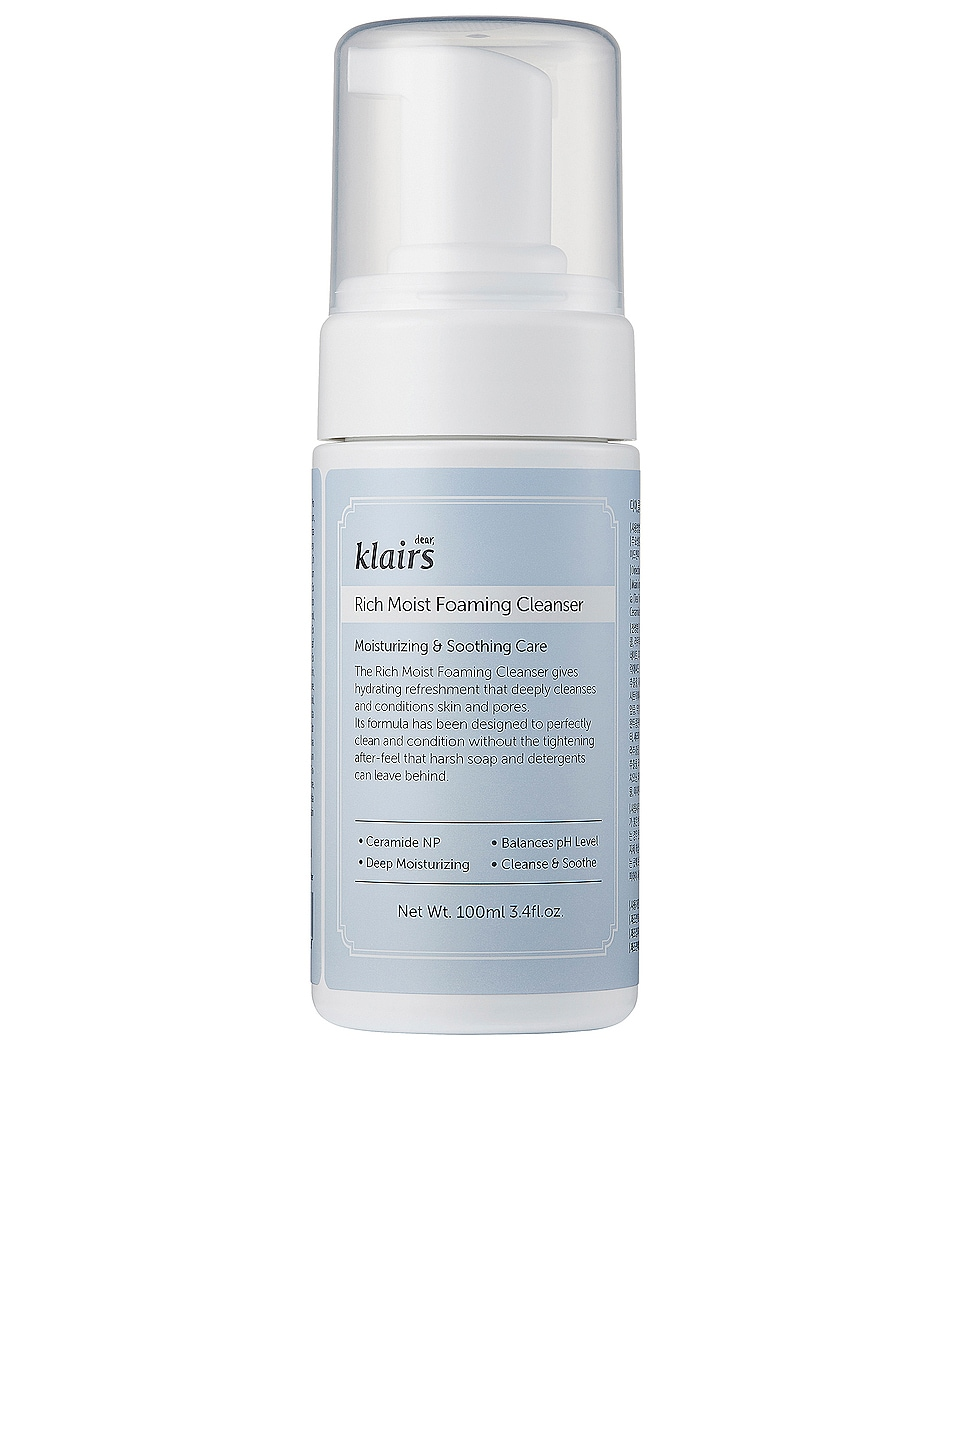 Klairs NETTOYANT RICH MOIST FOAMING CLEANSER